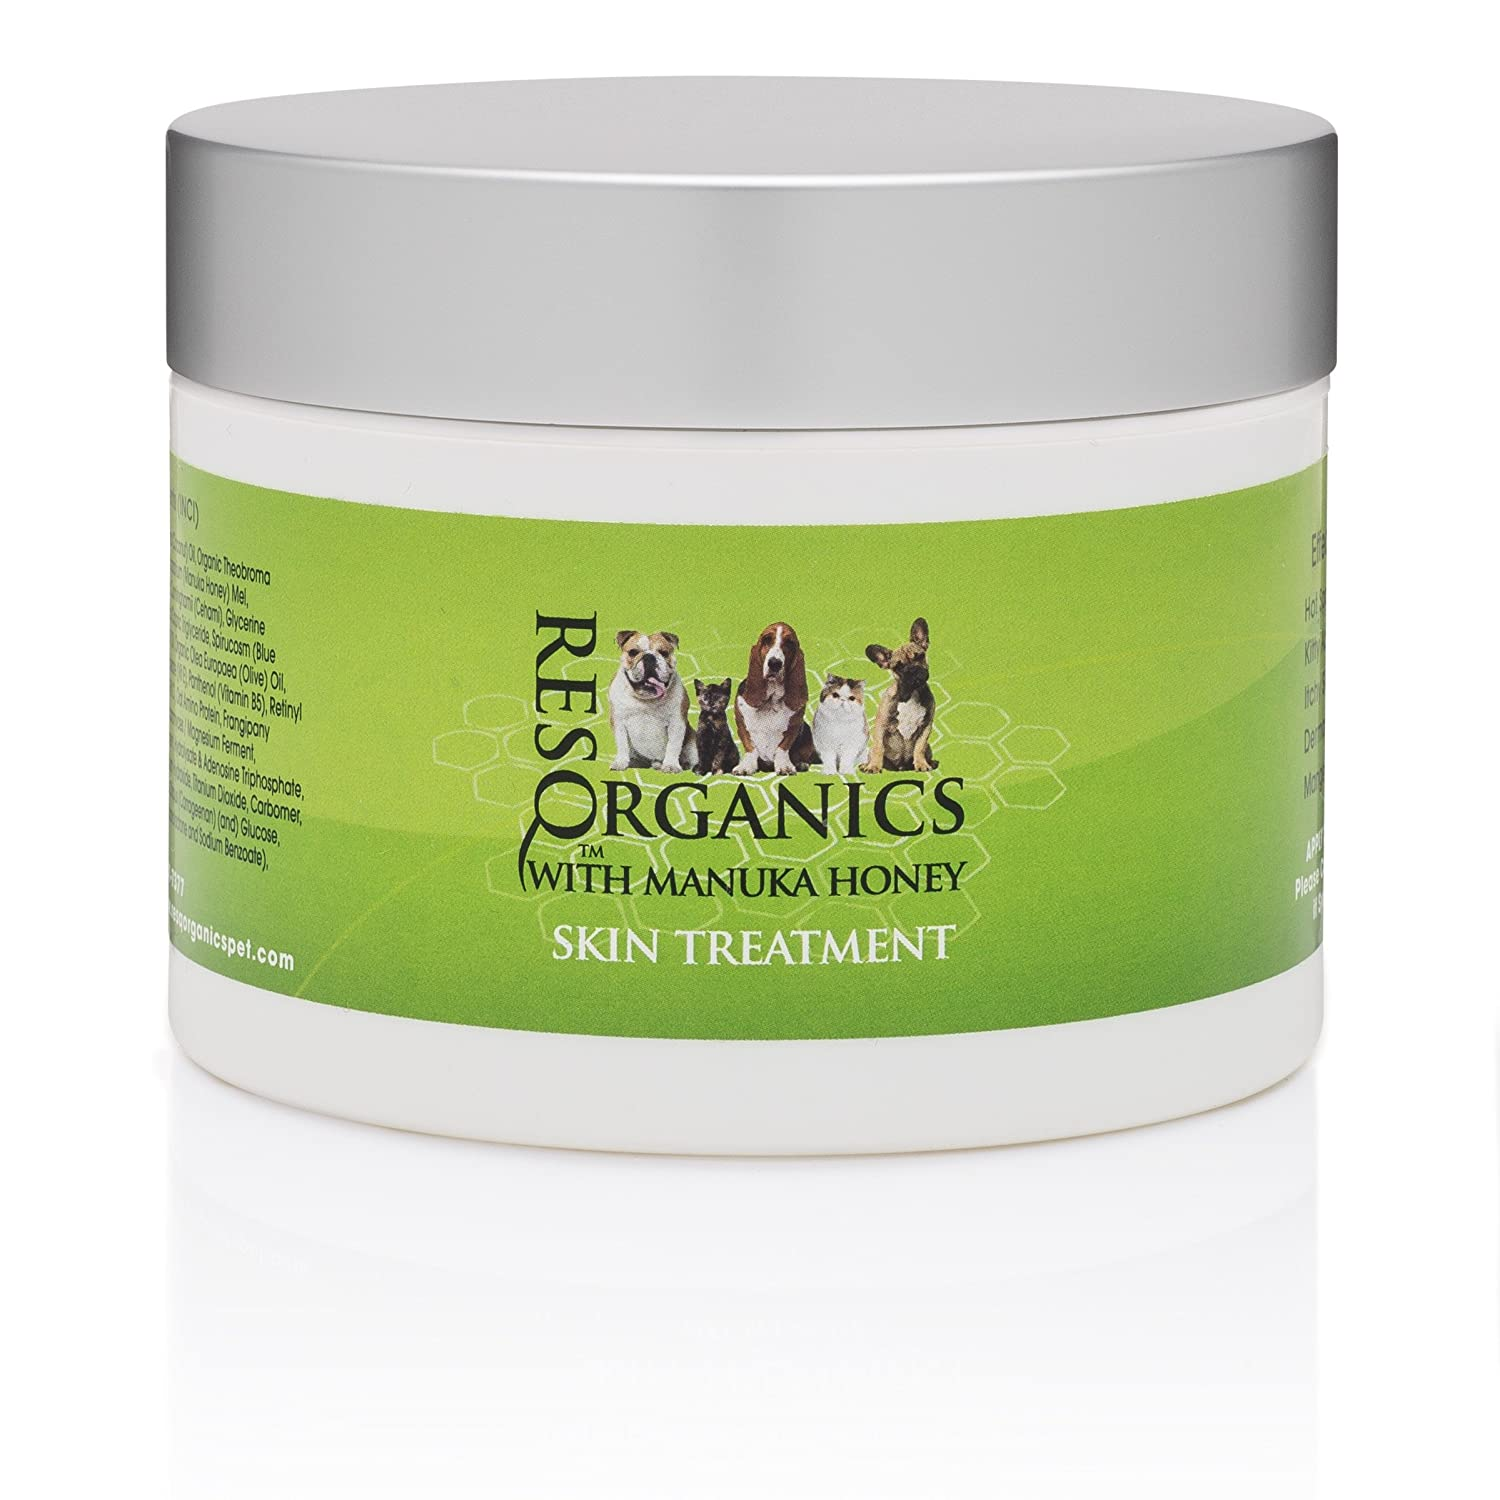 ResQ Organics Pet Skin Treatment - Effective For Hot Spots, Mange, Itchy Skin, Allergies, Dry Nose, Cracked Paws, Promotes Hair Growth.